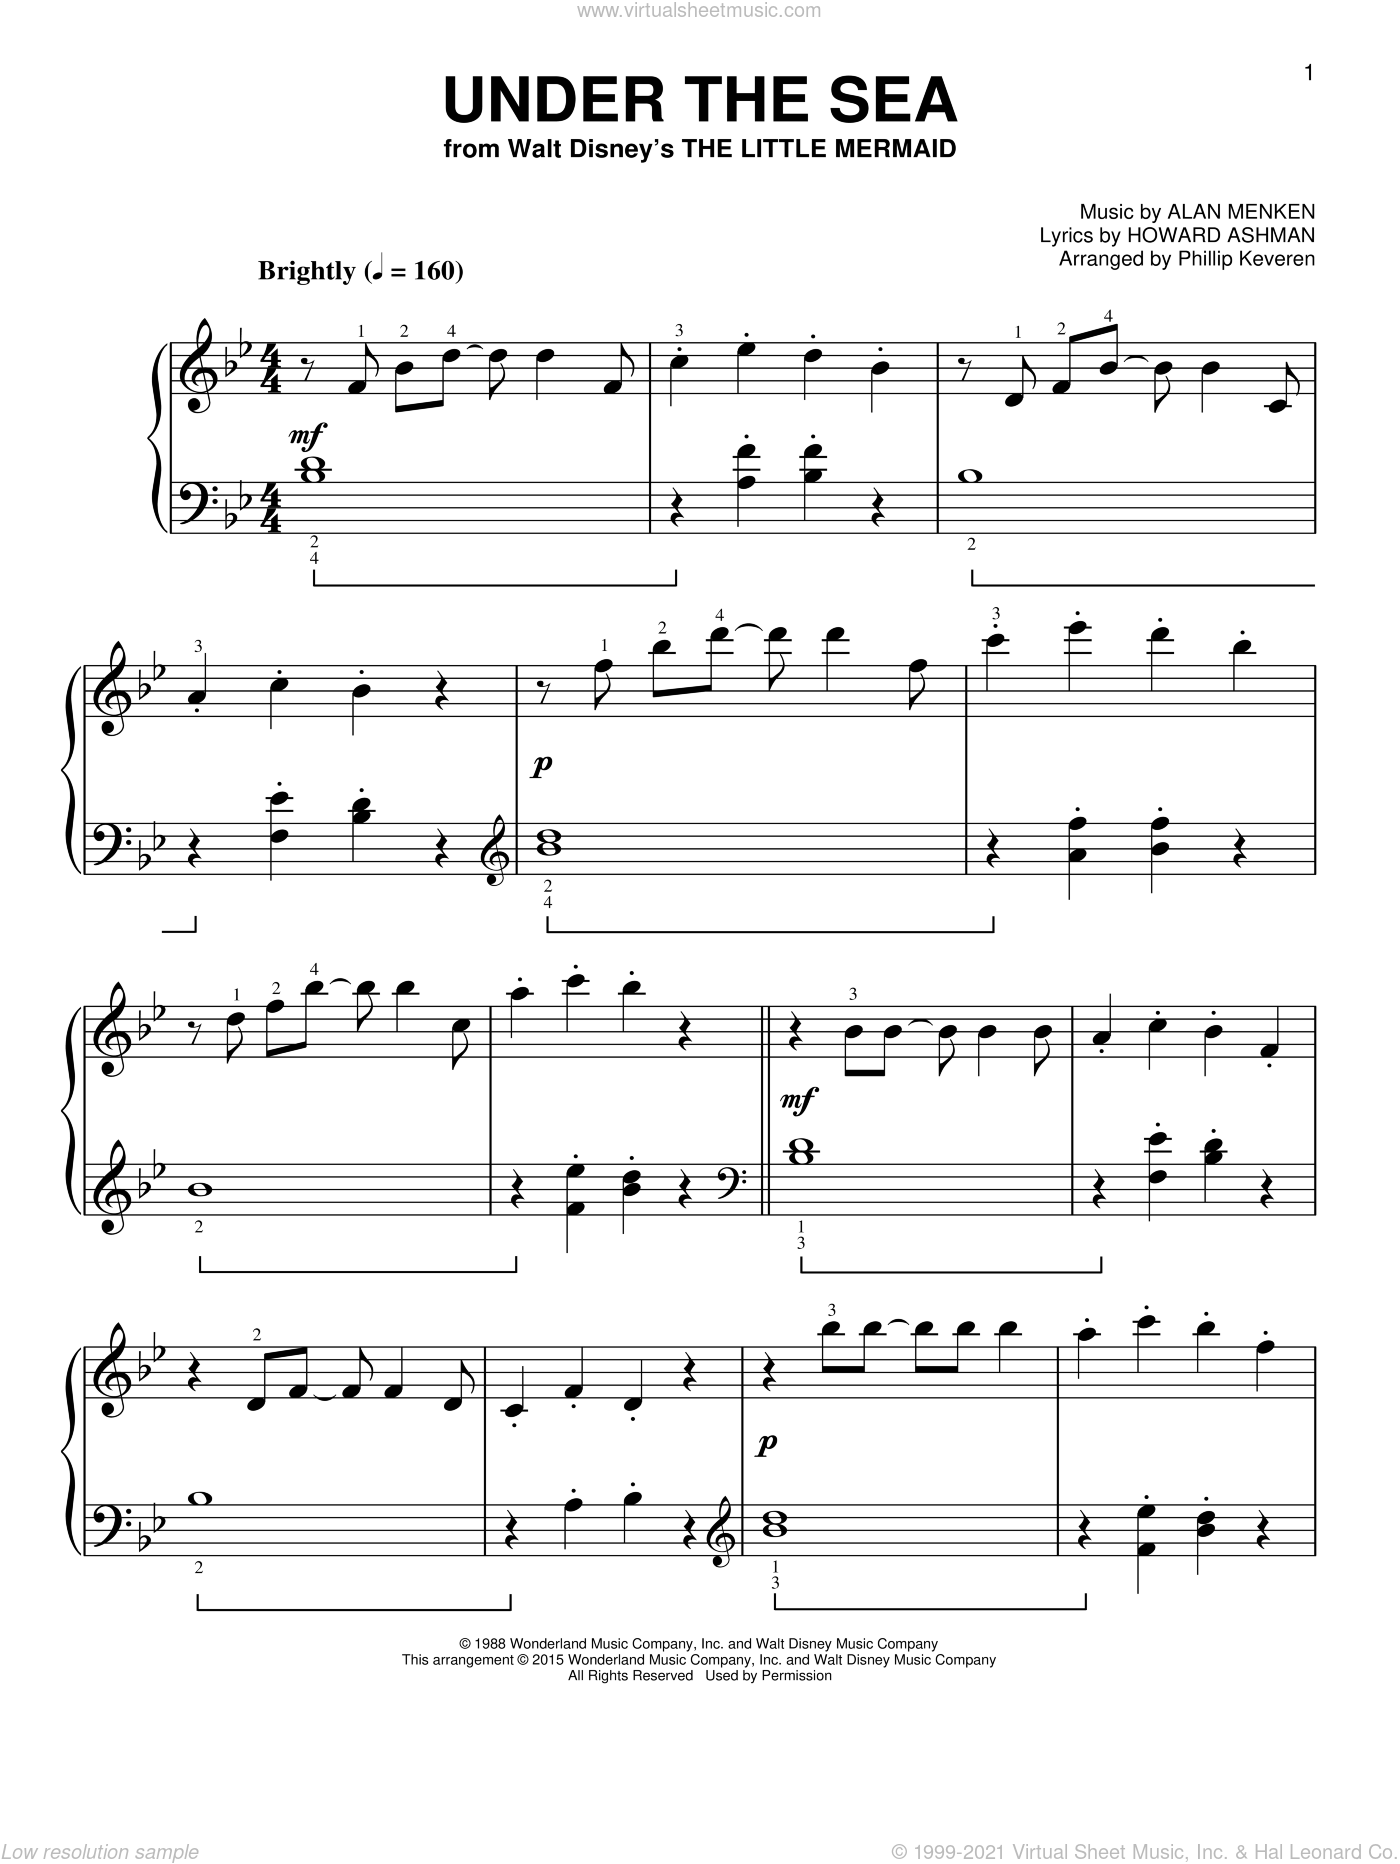 Under The Sea [Classical version] (from The Little Mermaid) (arr. Phillip Keveren), (easy) sheet music for piano solo by Alan Menken, Phillip Keveren and Howard Ashman, easy skill level